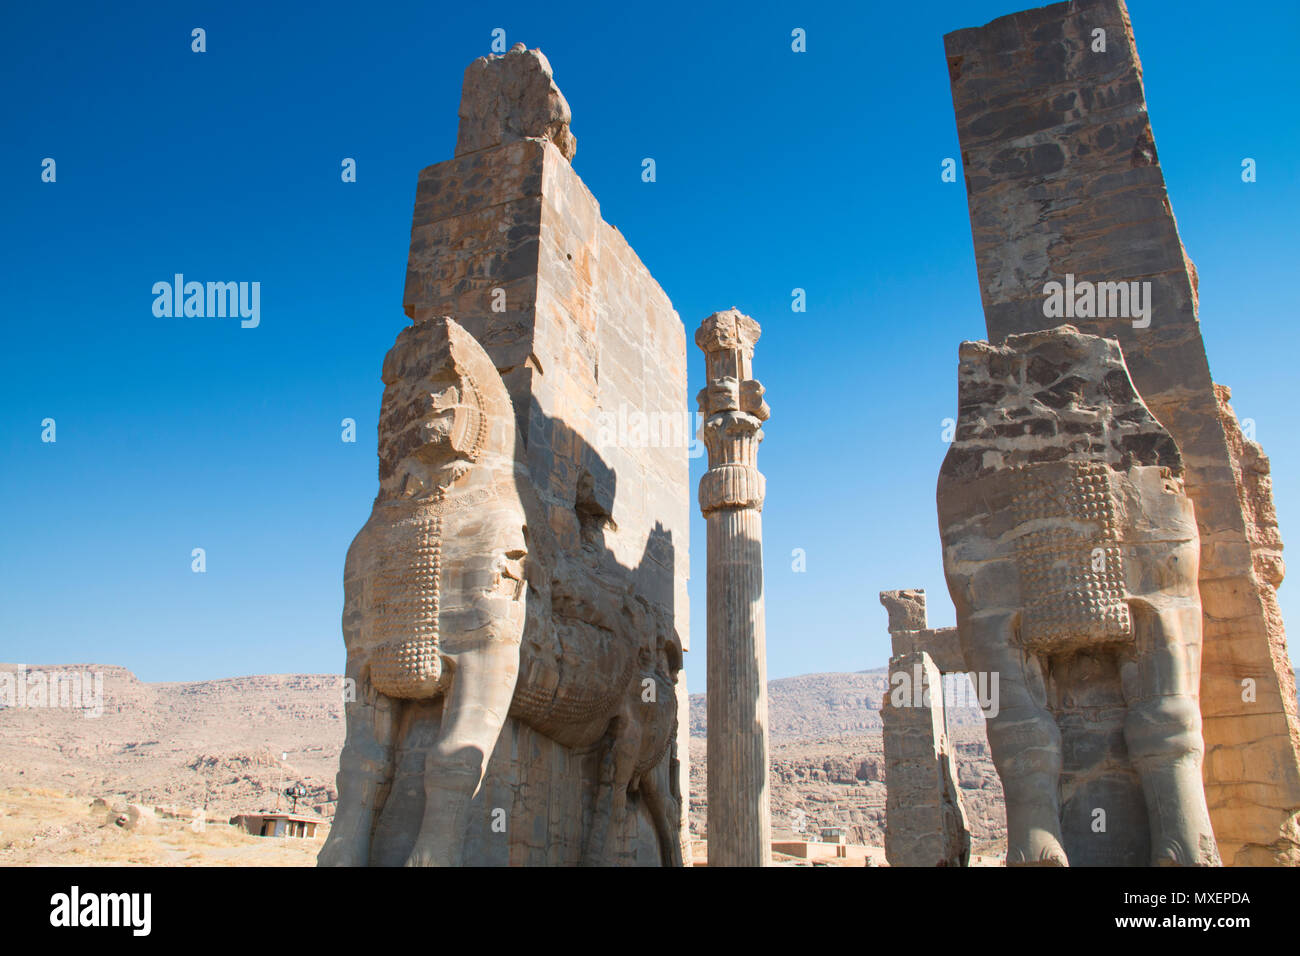 Gate of all nations at the Ancient city Persepolis was once the capital of the Achaemenid empire and is now UNESCO heritage. The site can be found nea - Stock Image